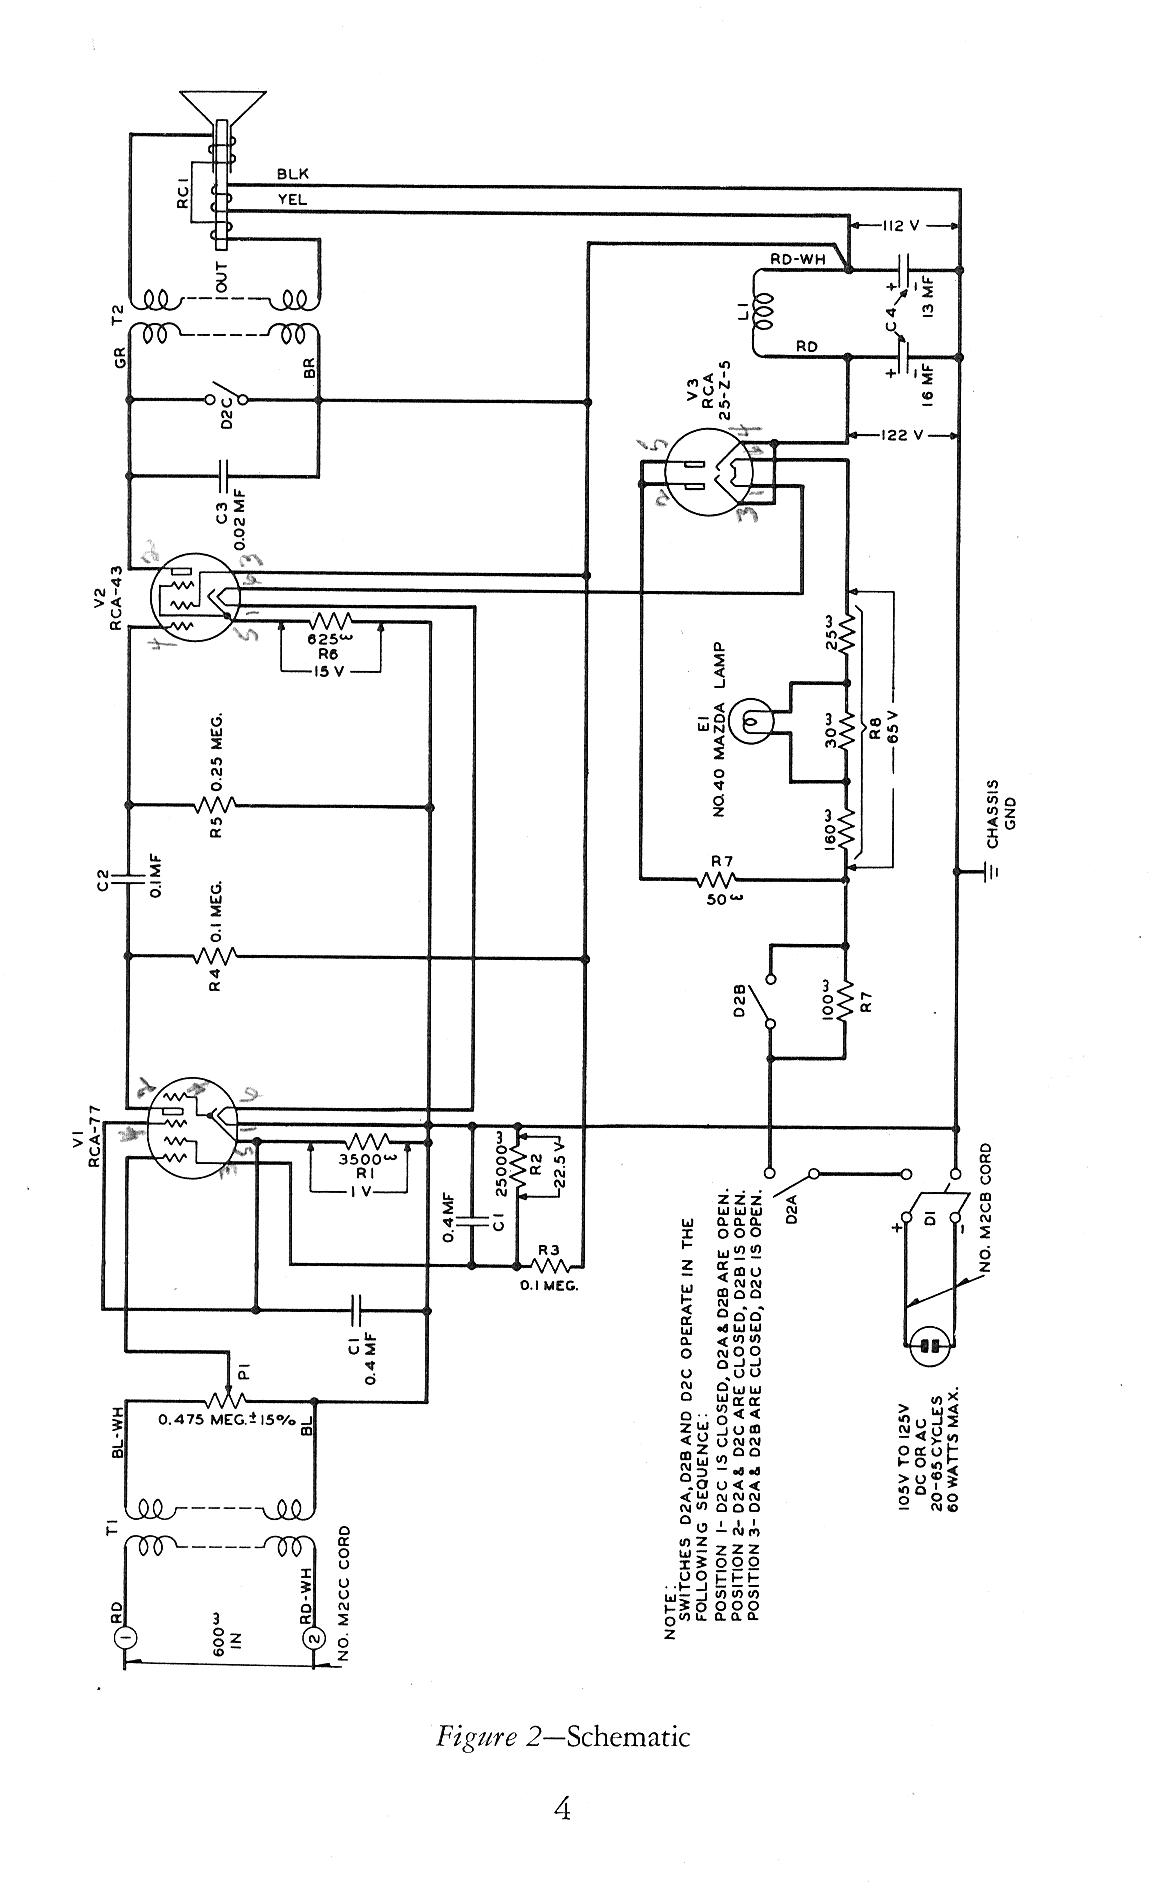 100e_schematic telephone technical references kellogg telephone wiring diagram at crackthecode.co